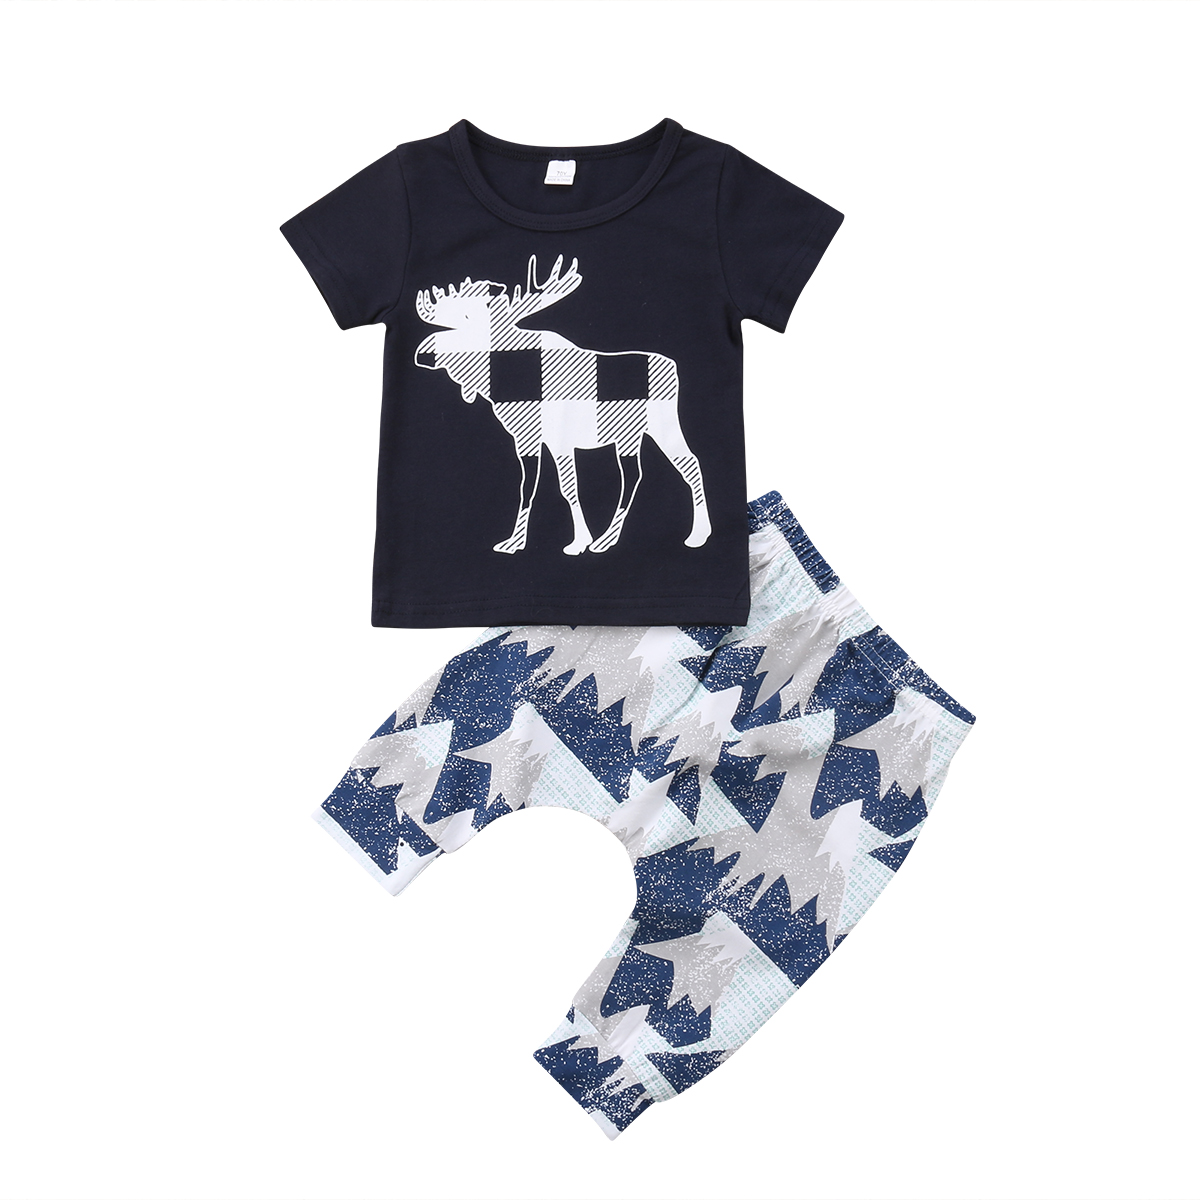 2018 Deer Newborn Christmas Toddler Infant Baby Boy Girl Clothes T Shirt Tops Pants Outfits Set Hot